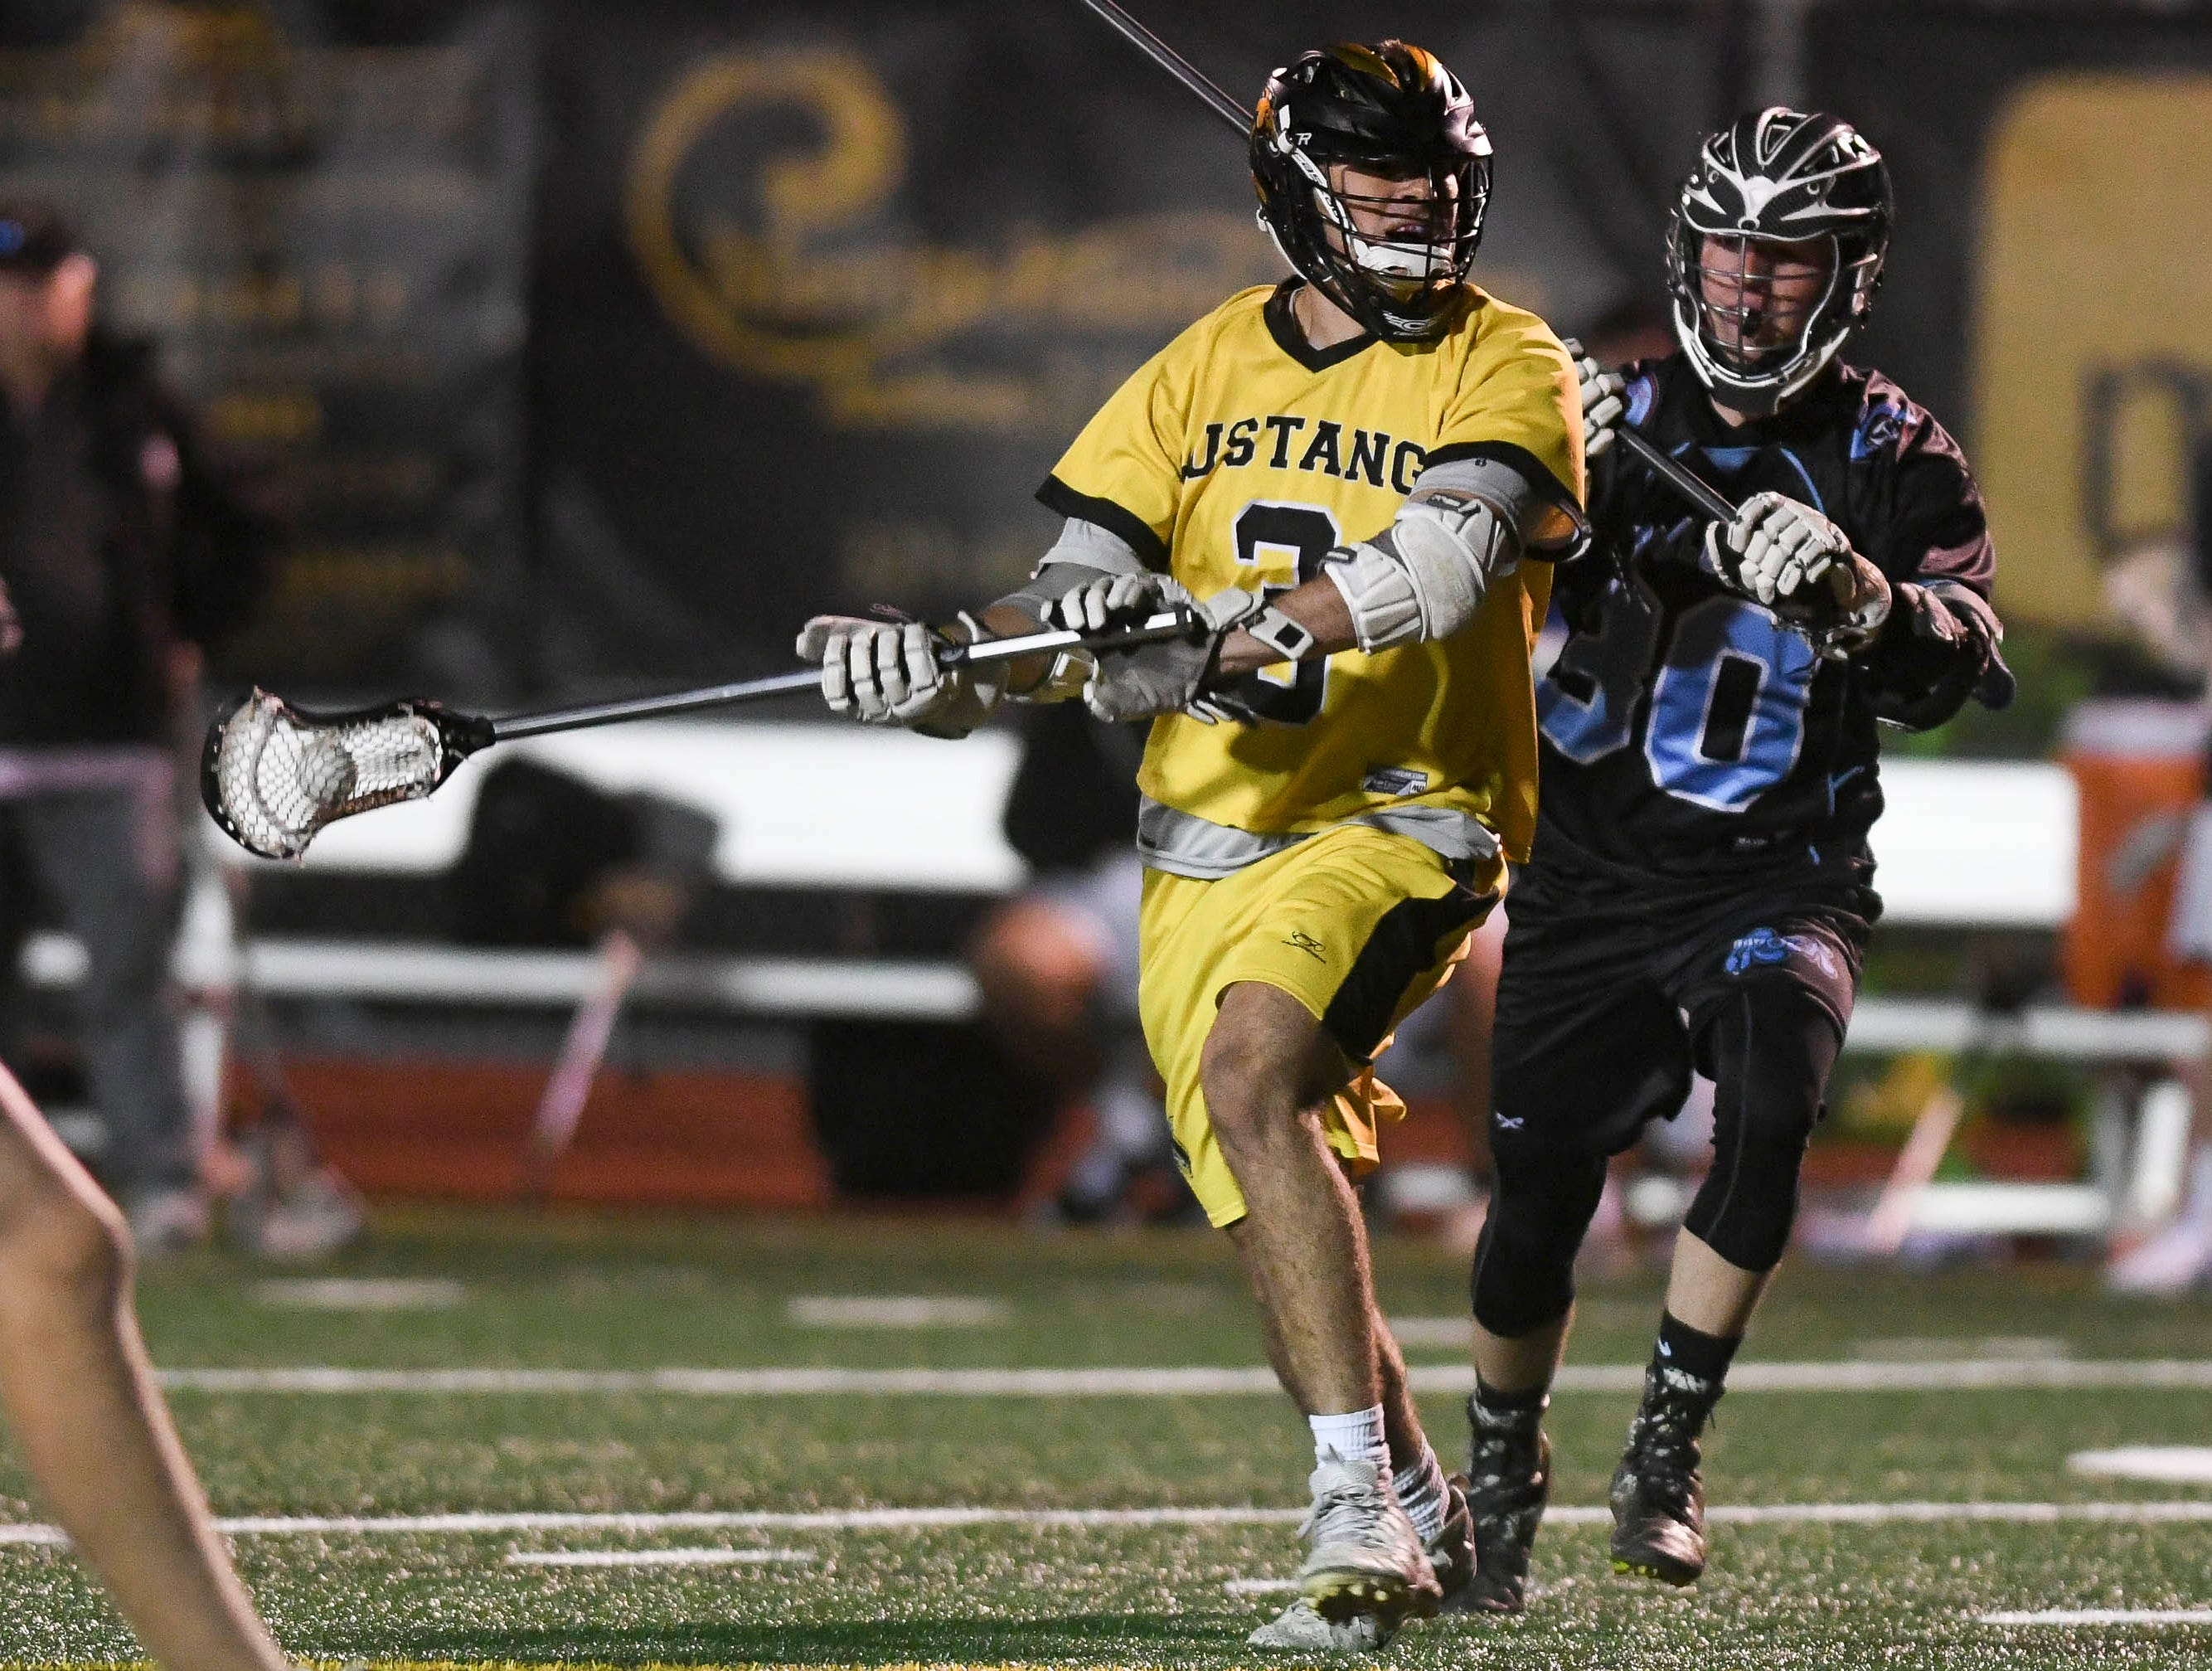 Nick Sidor of Merritt Island is pursued by Andy DelCampo of Rockledge during Wednesday's game.